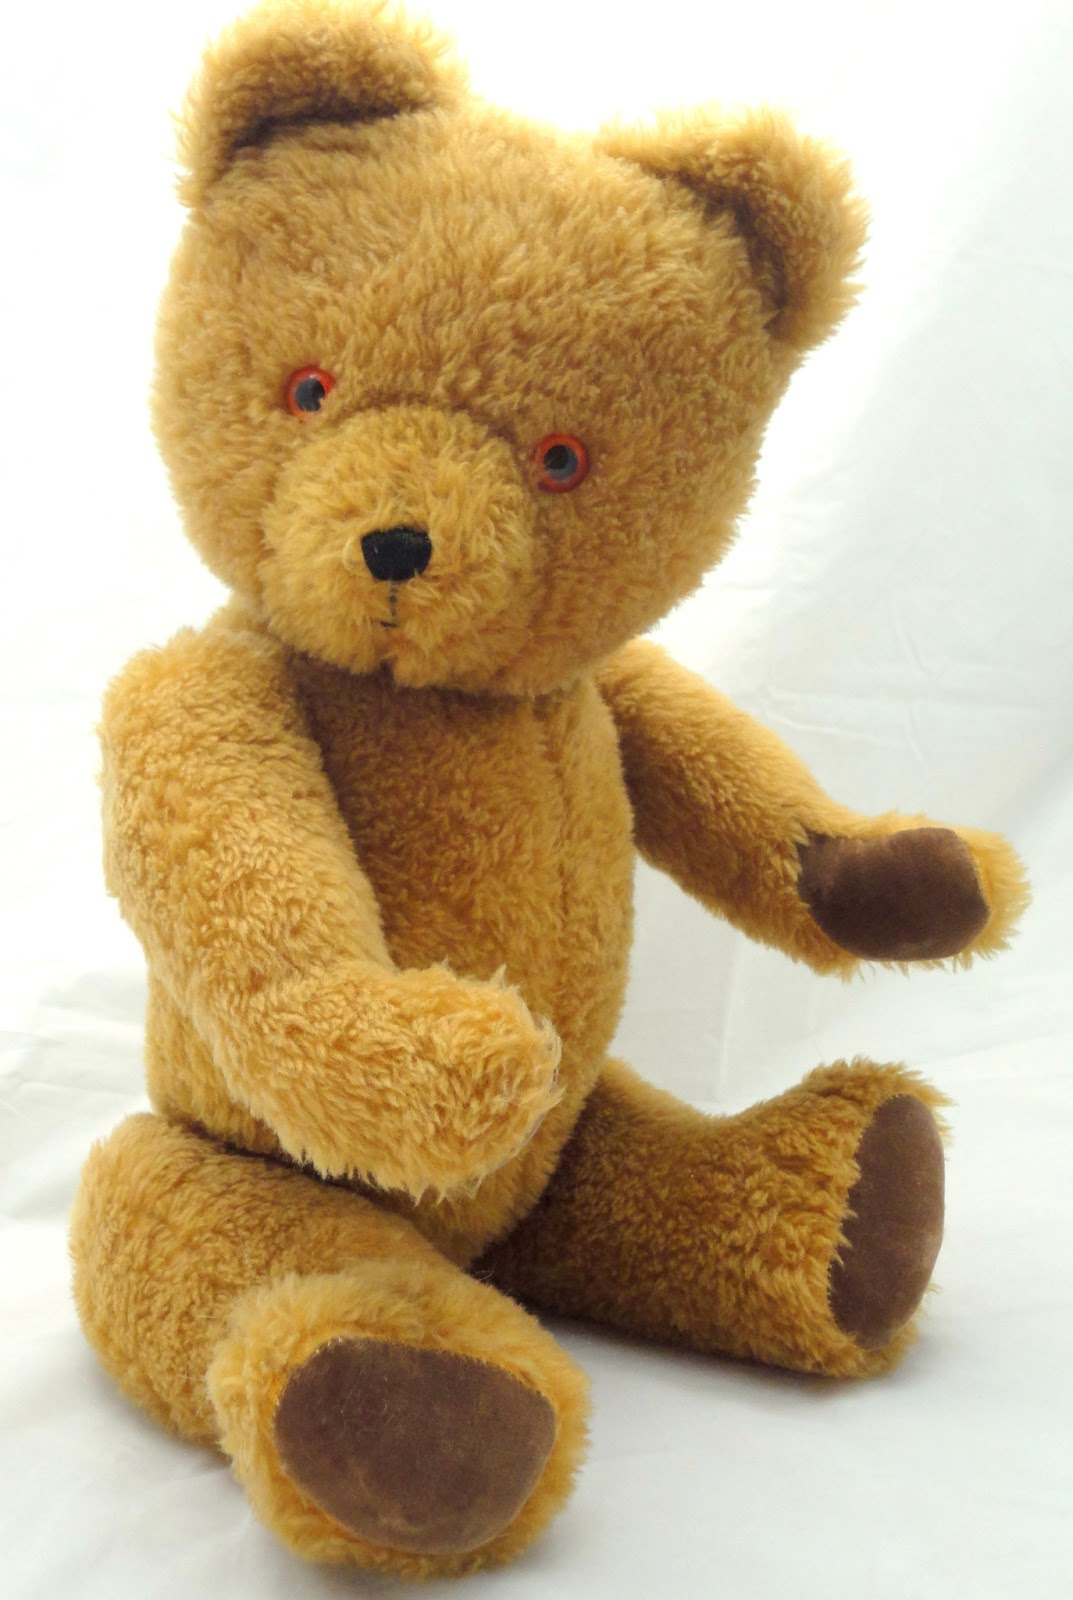 Australian Made Teddy Bears Wendy Boston Uk Collectible Teddy Bears Mandicrafts News